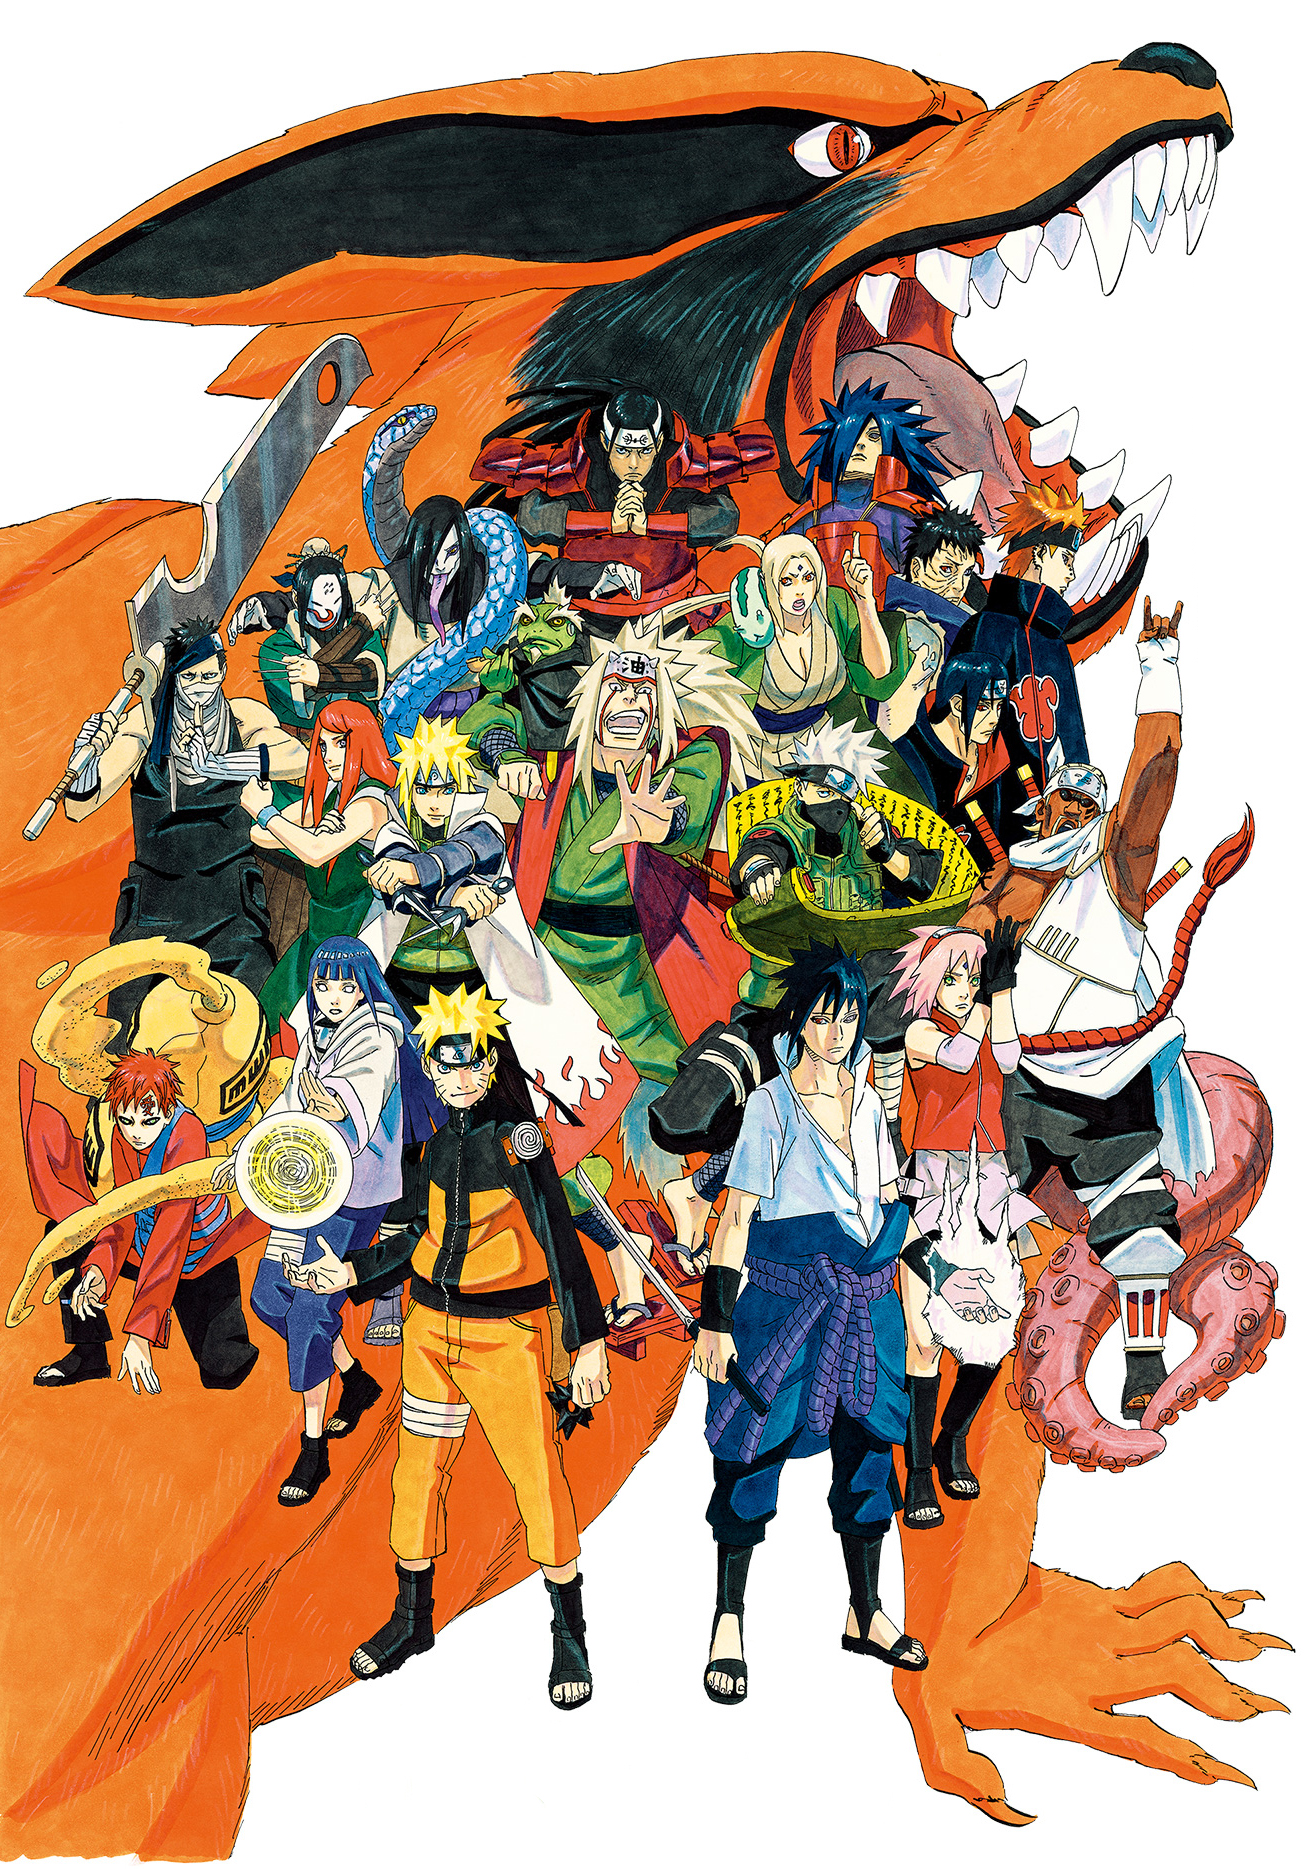 An image of some of the wide variety of characters in the Naruto series